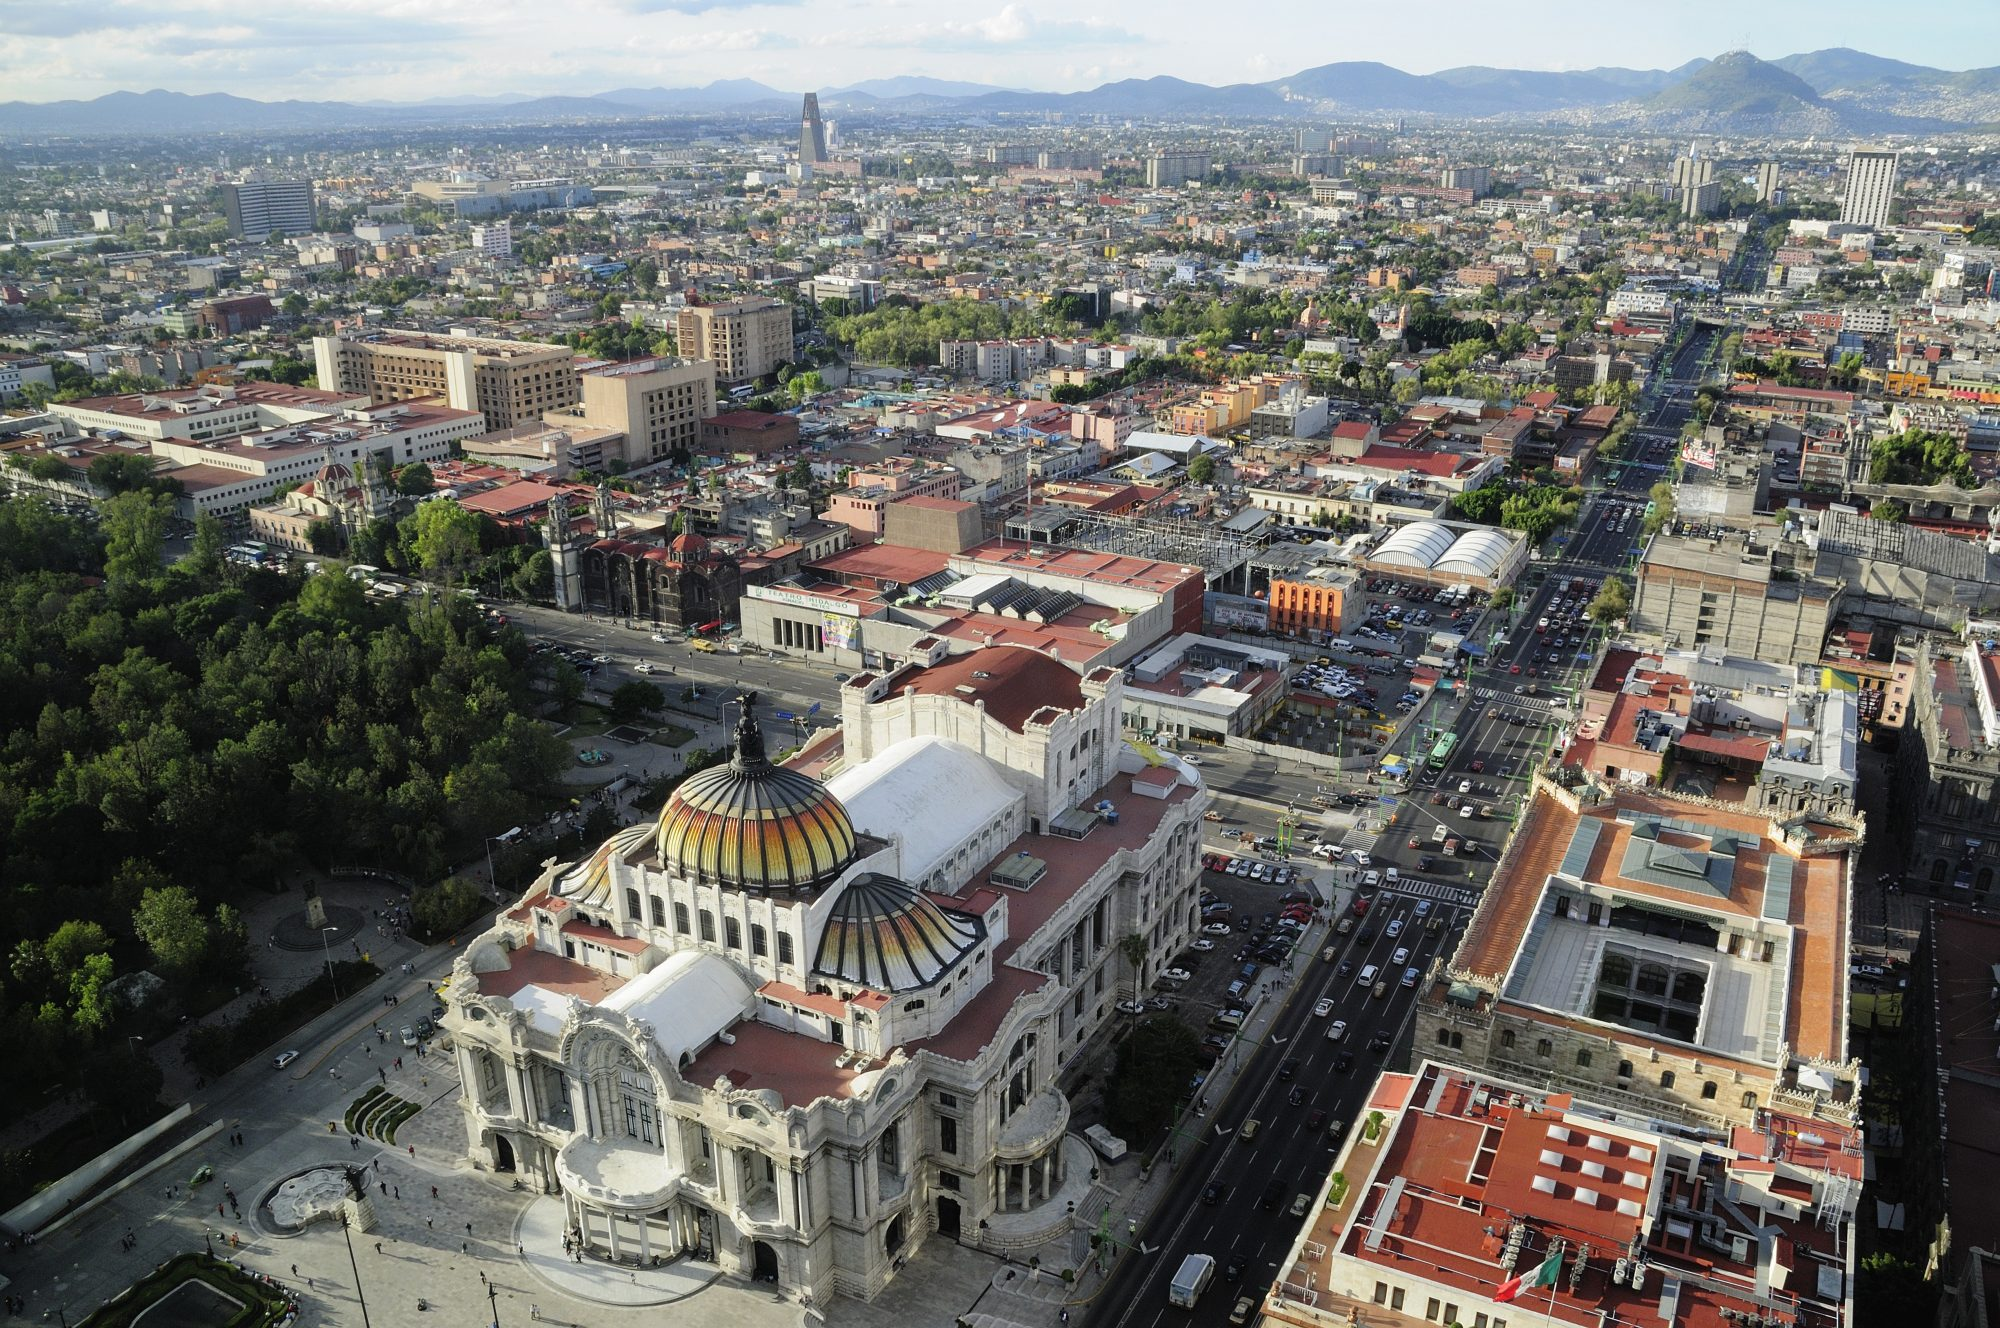 Mexico, Federal District, Mexico City, View across the city from Torre Latinoamericana with Palacio Bellas Artes in foreground